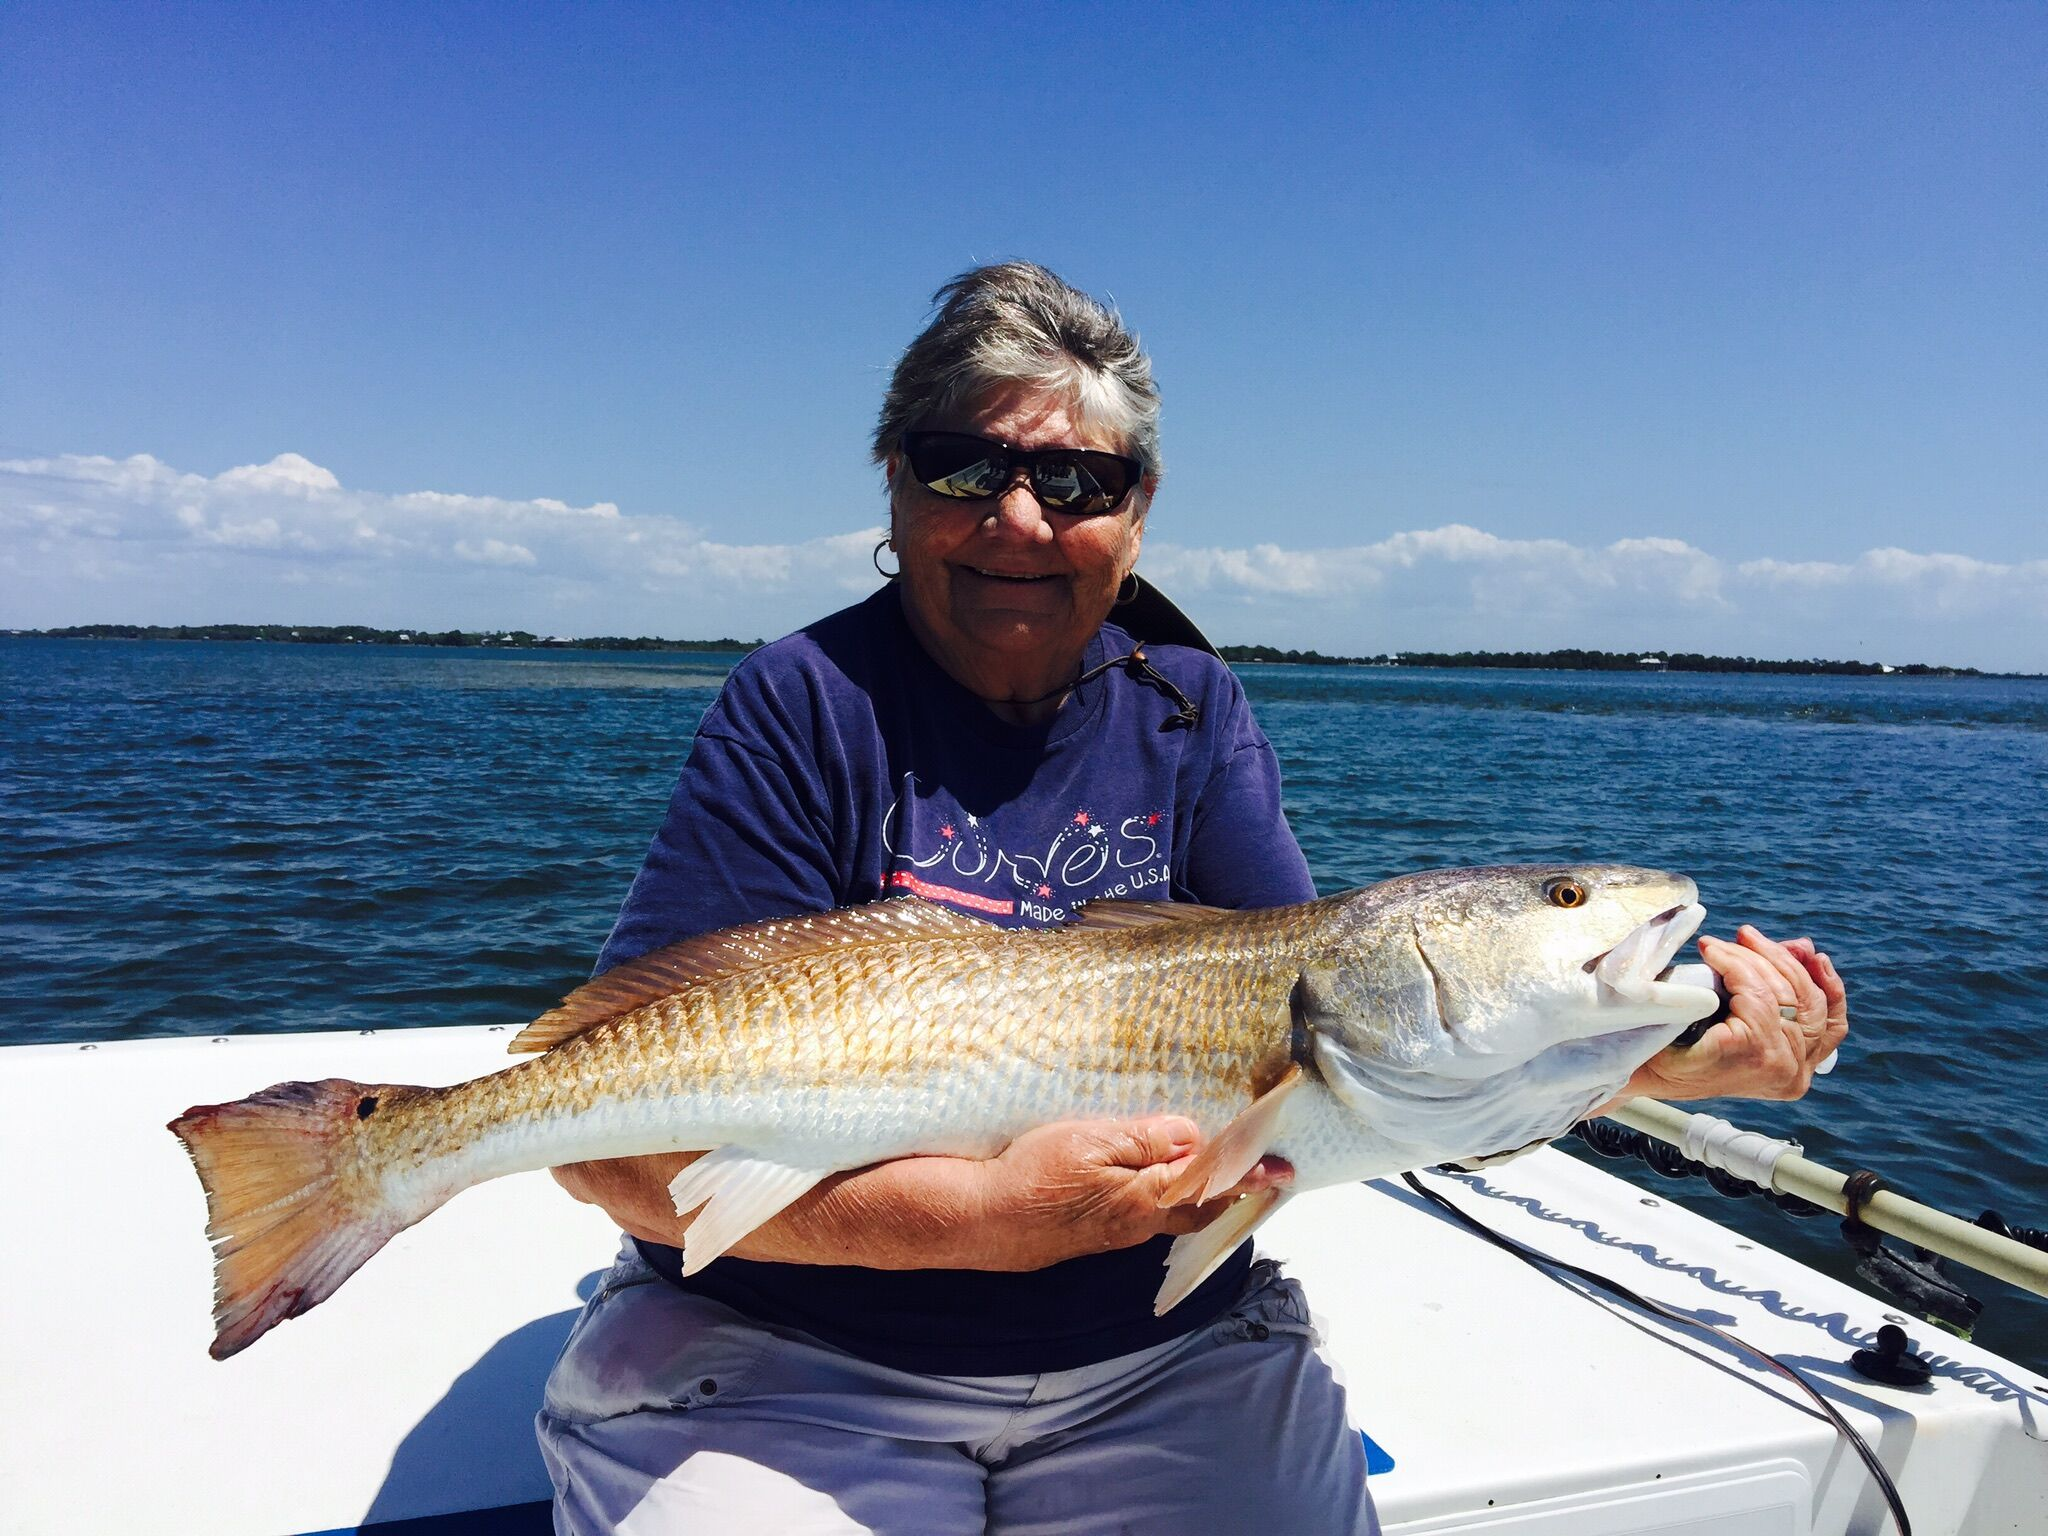 Cedar key fishing report coastal angler the angler for Cedar key fishing